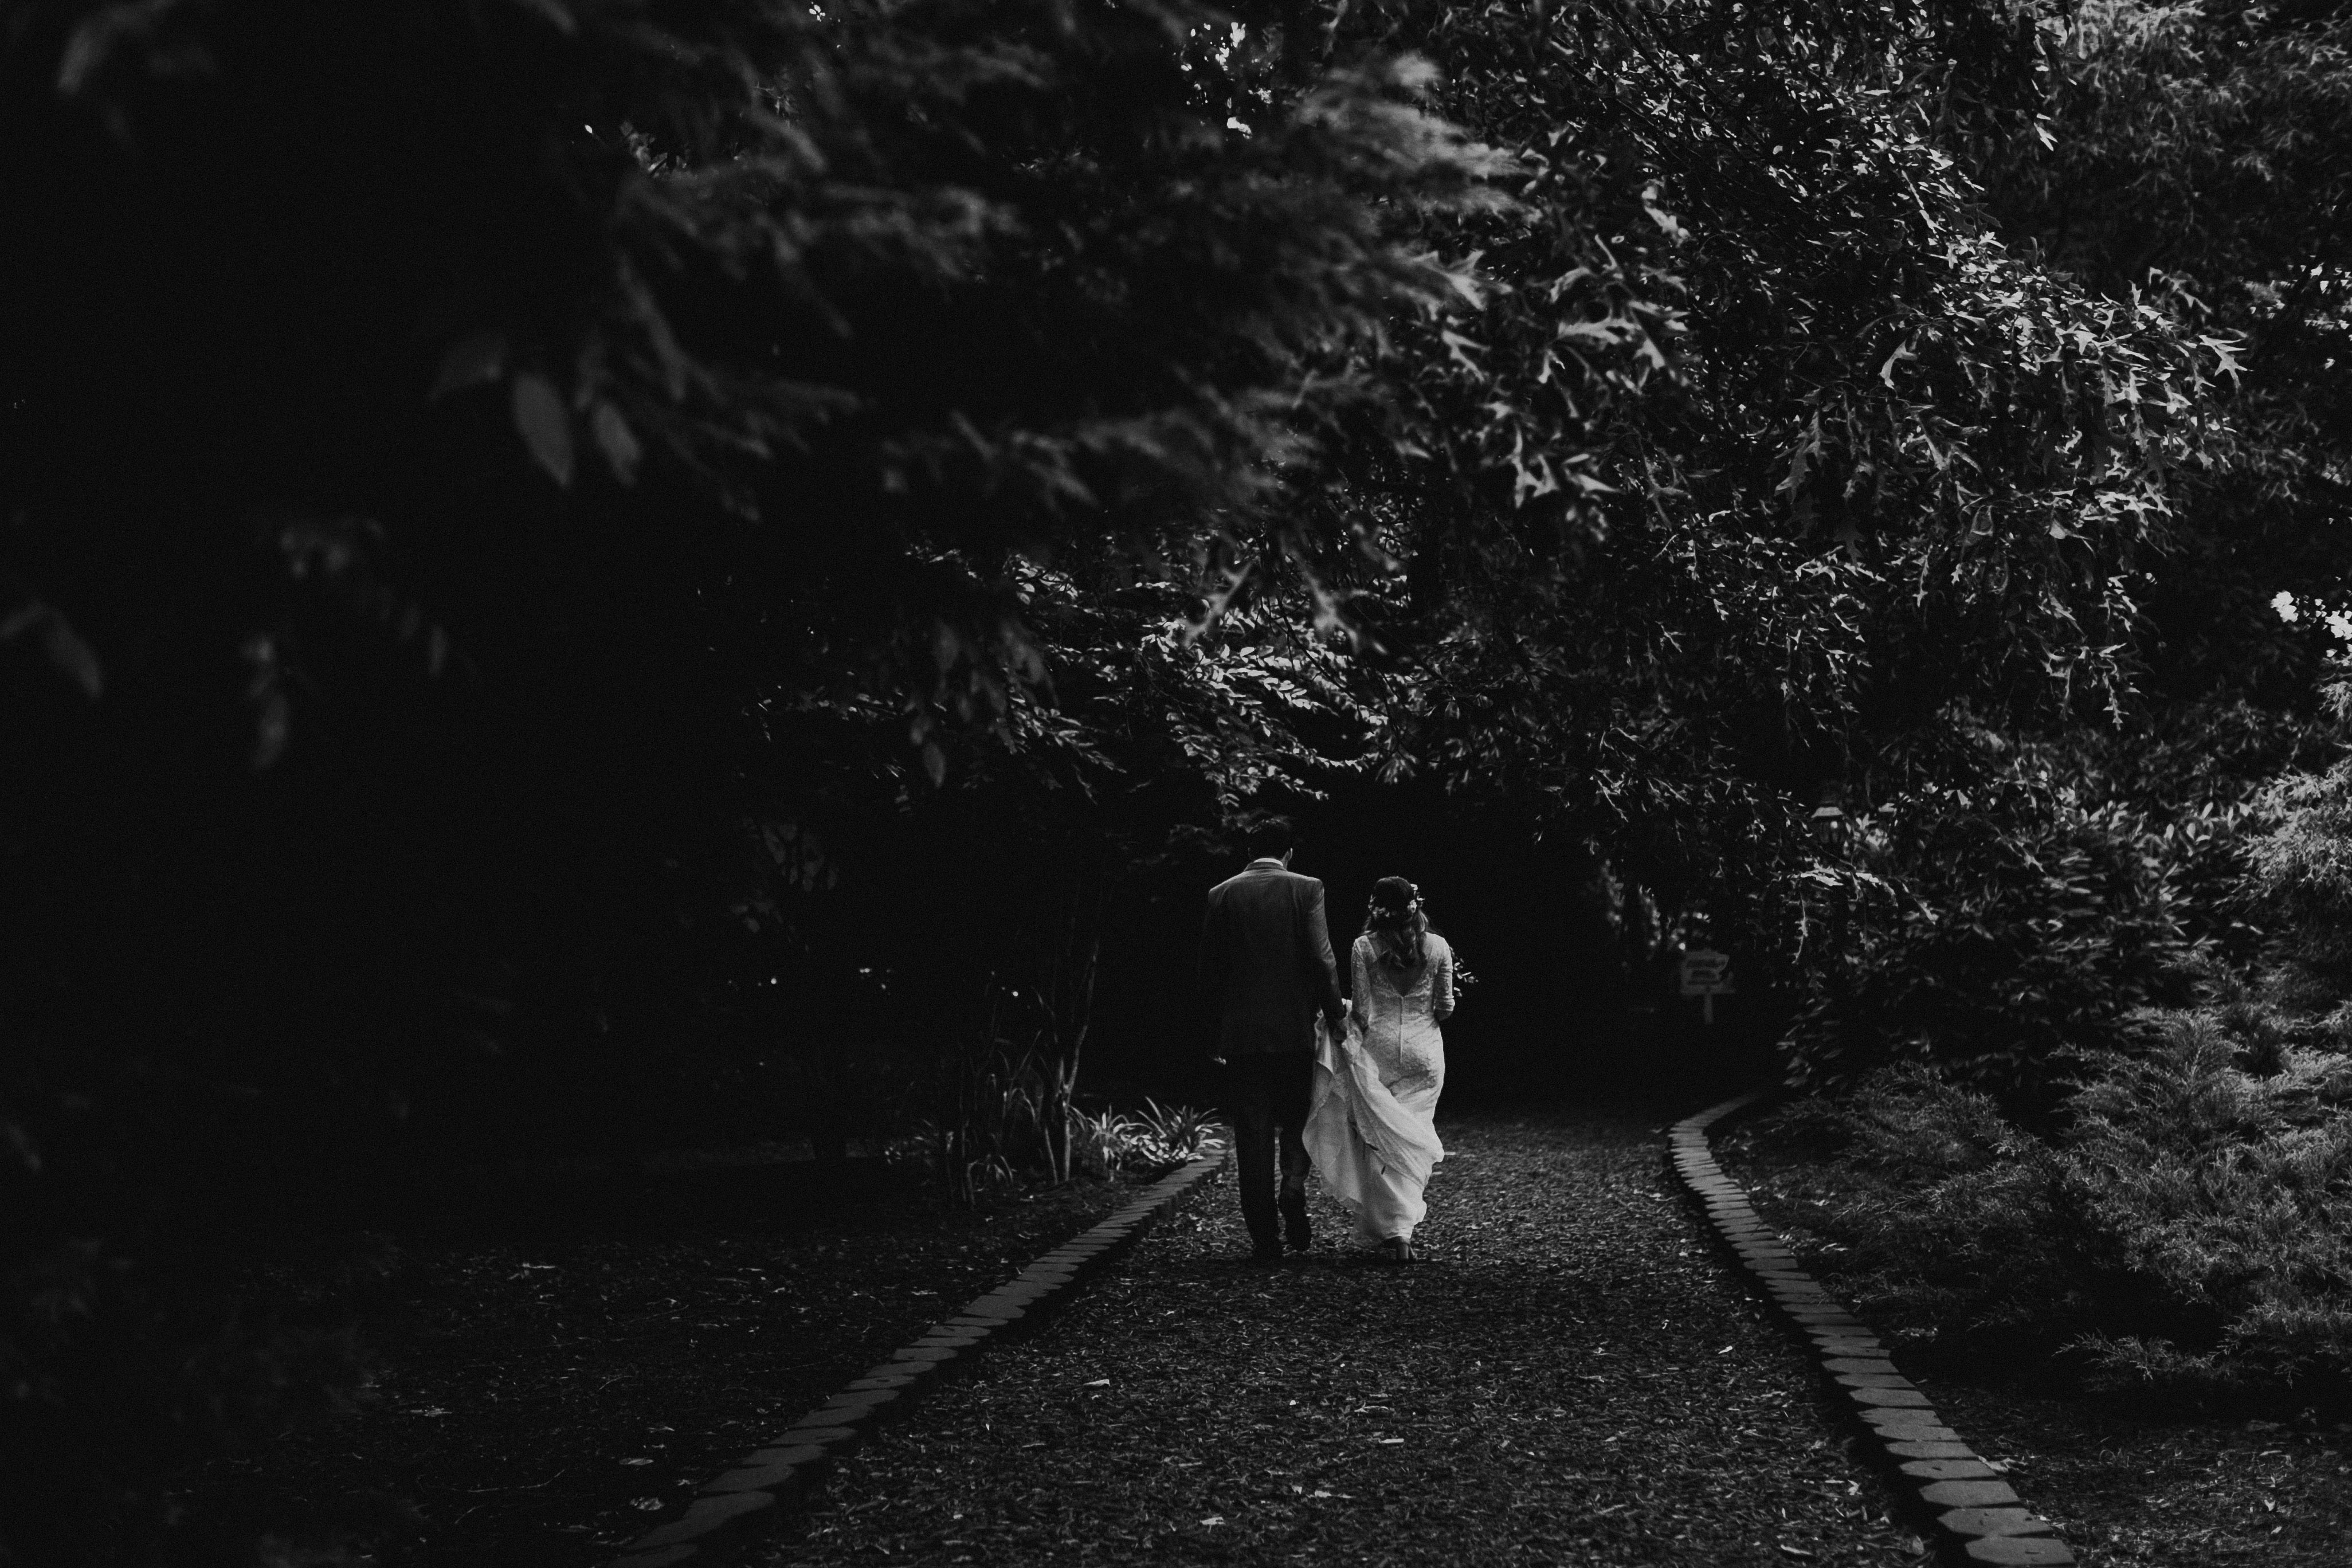 A married couple walking down a forest path.